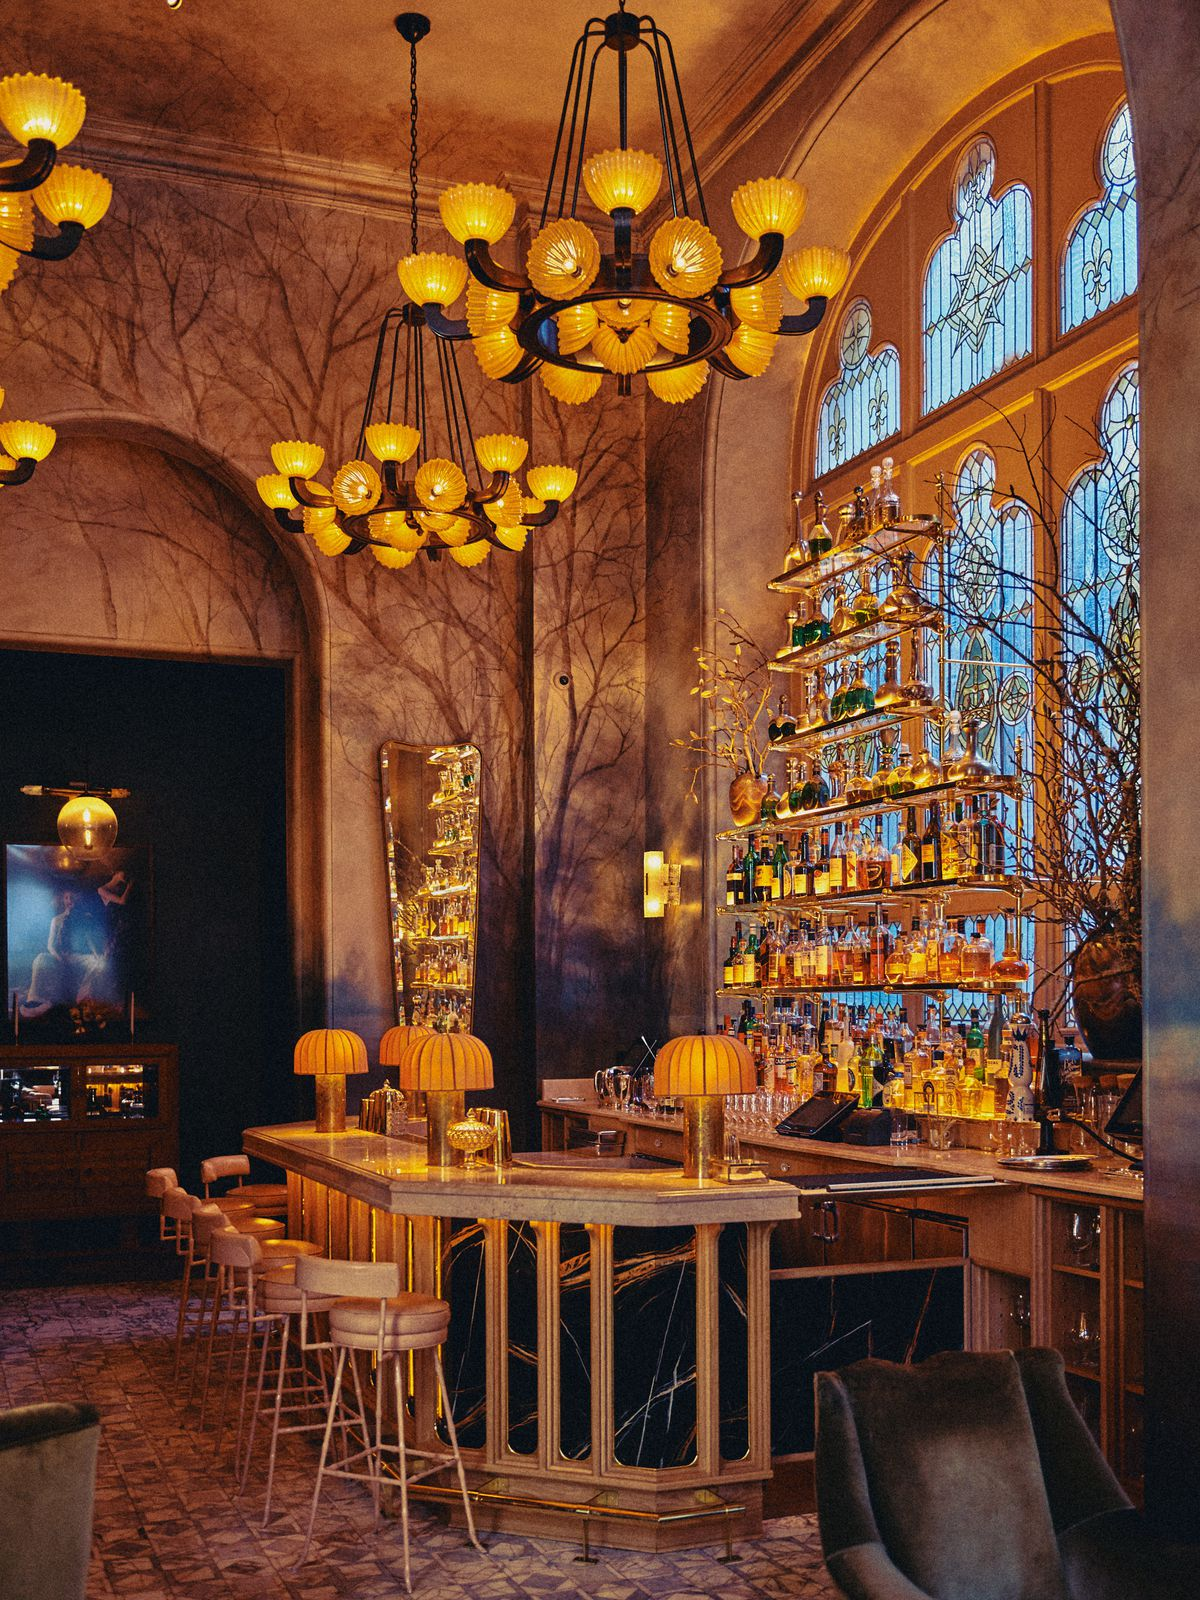 A high-ceilinged bar with chandeliers and an amber glow.